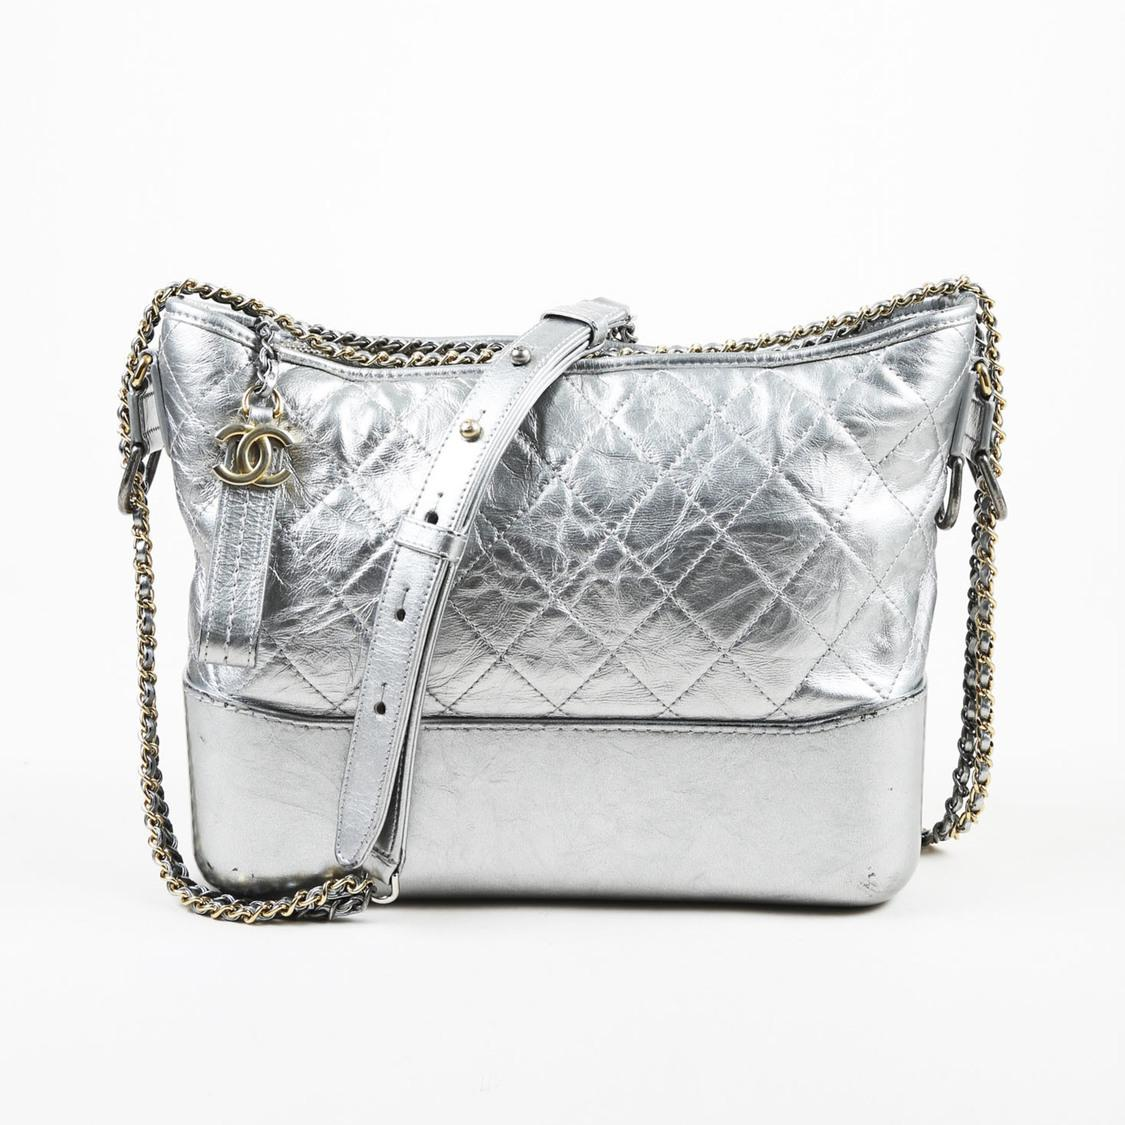 ea62a3c646a Lyst - Chanel Metallic Silver Lambskin Medium